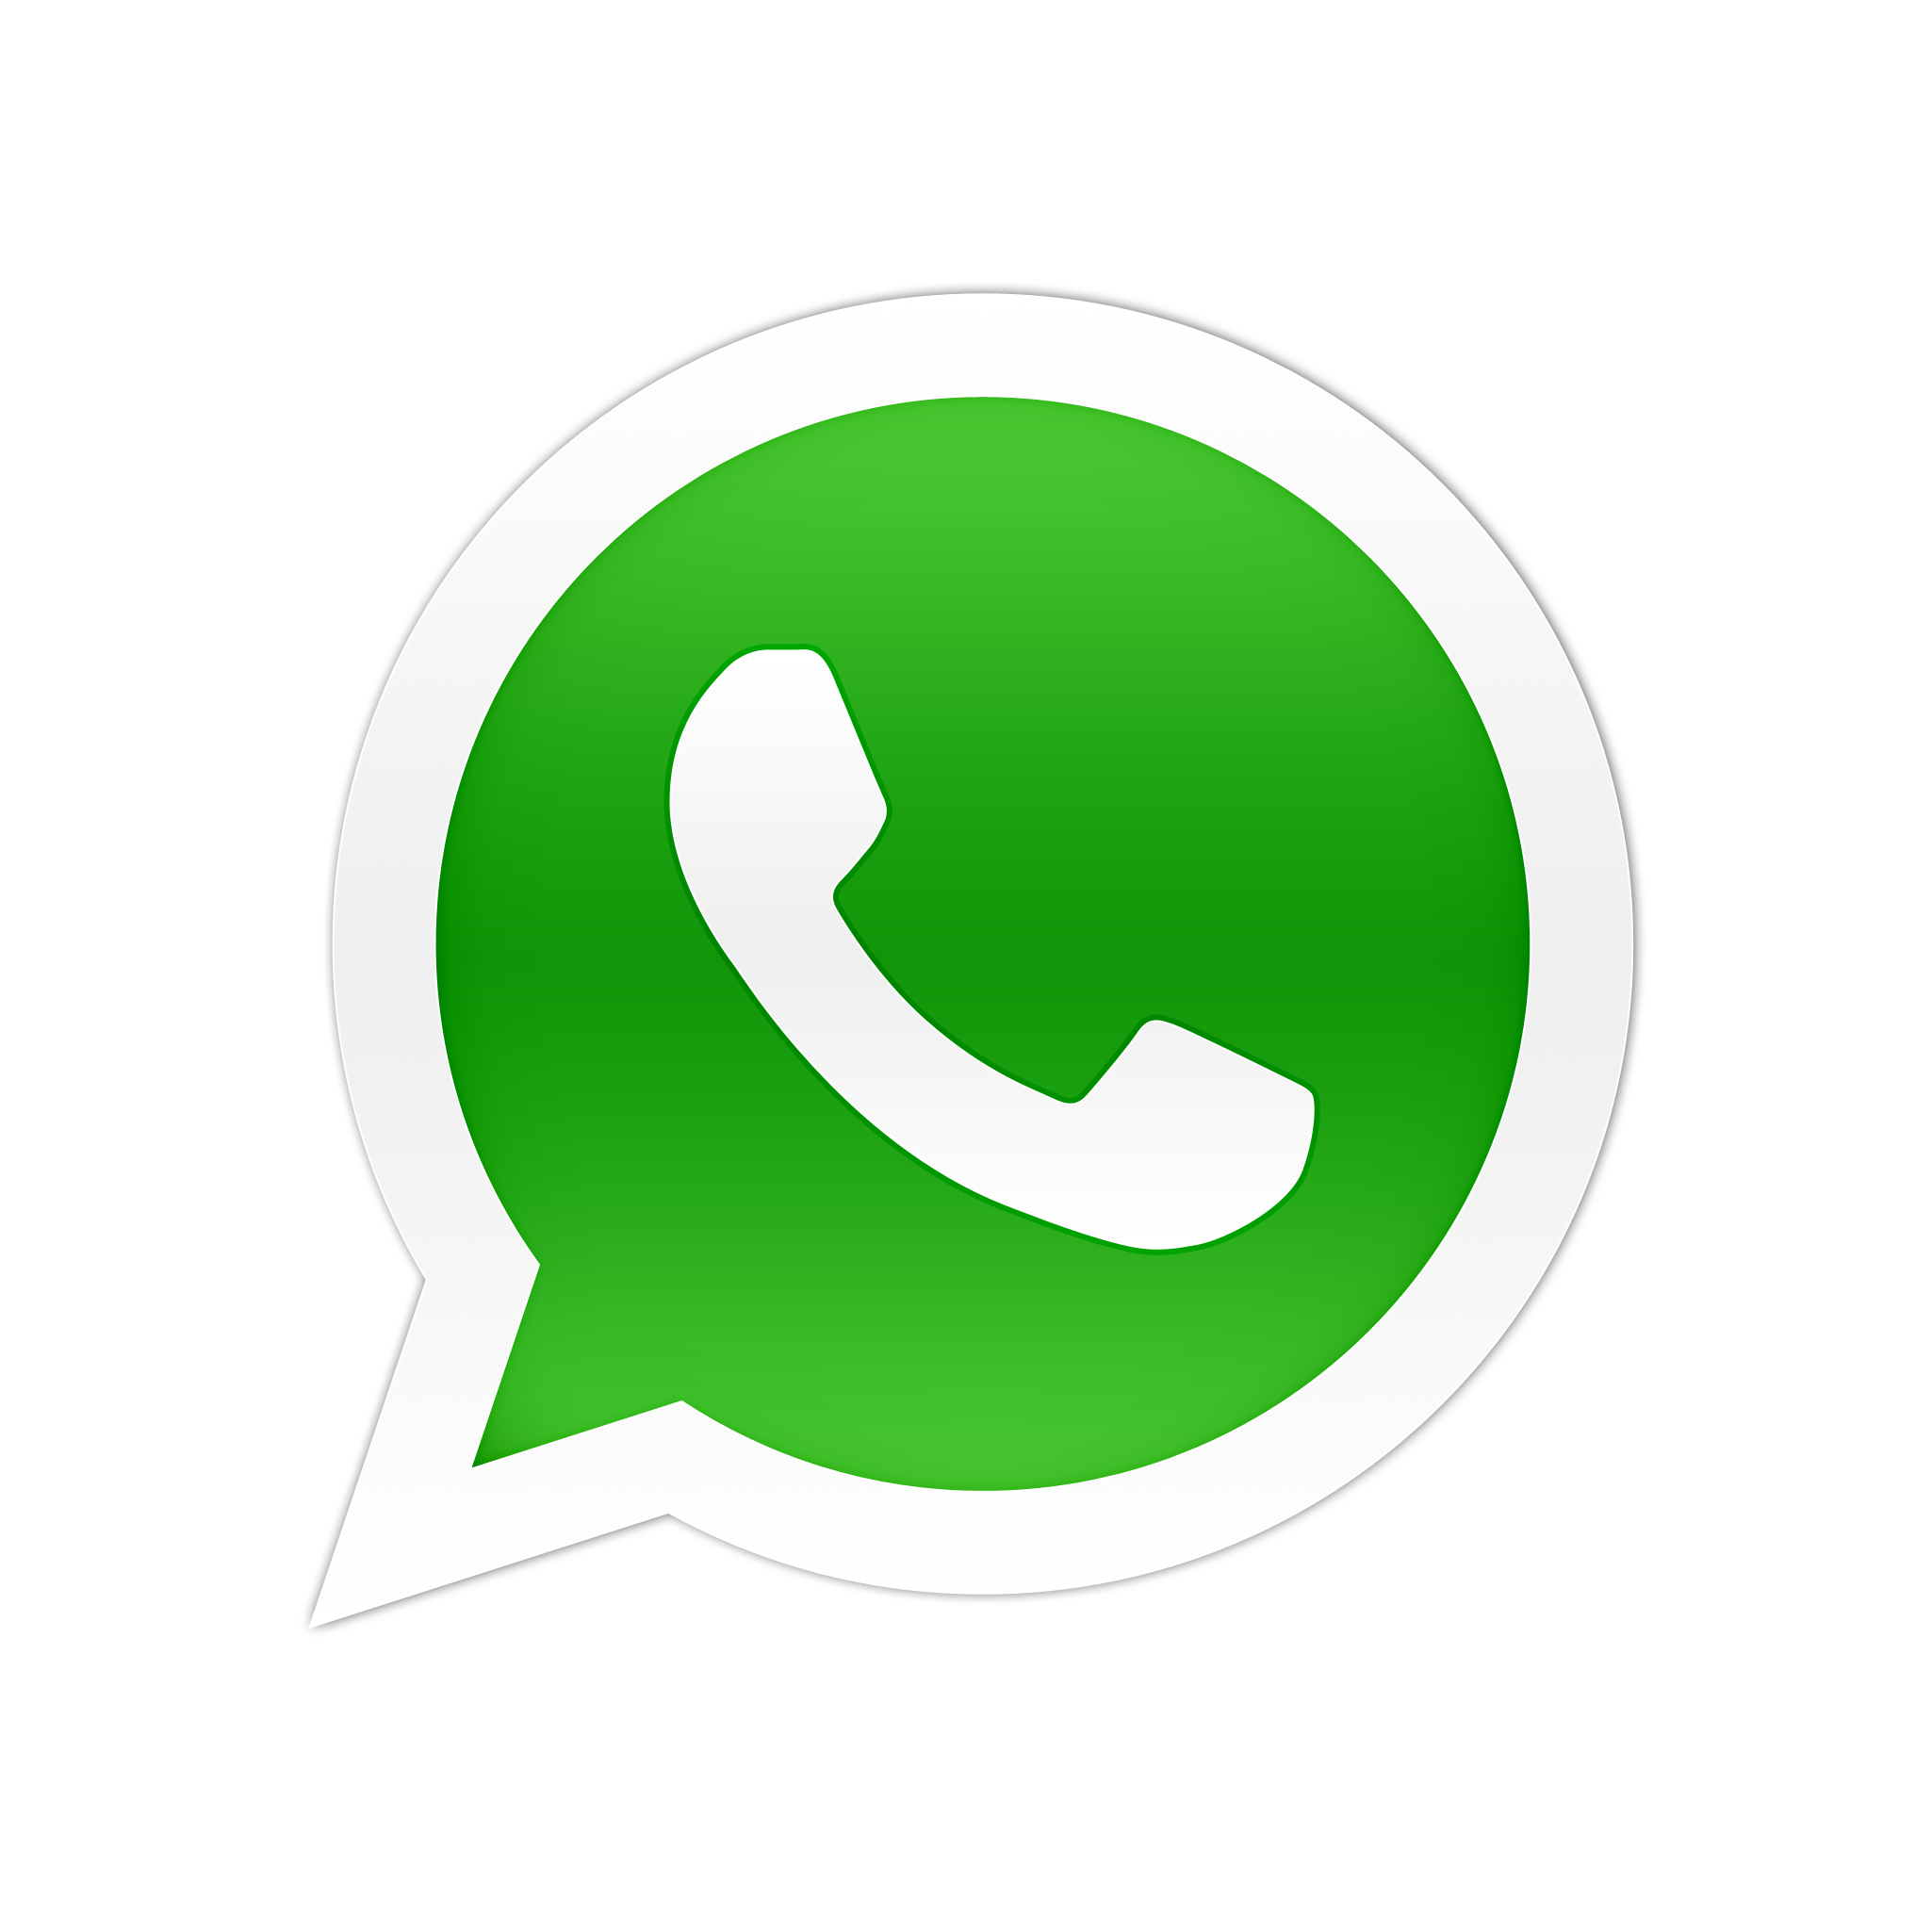 whatsapp logotipo